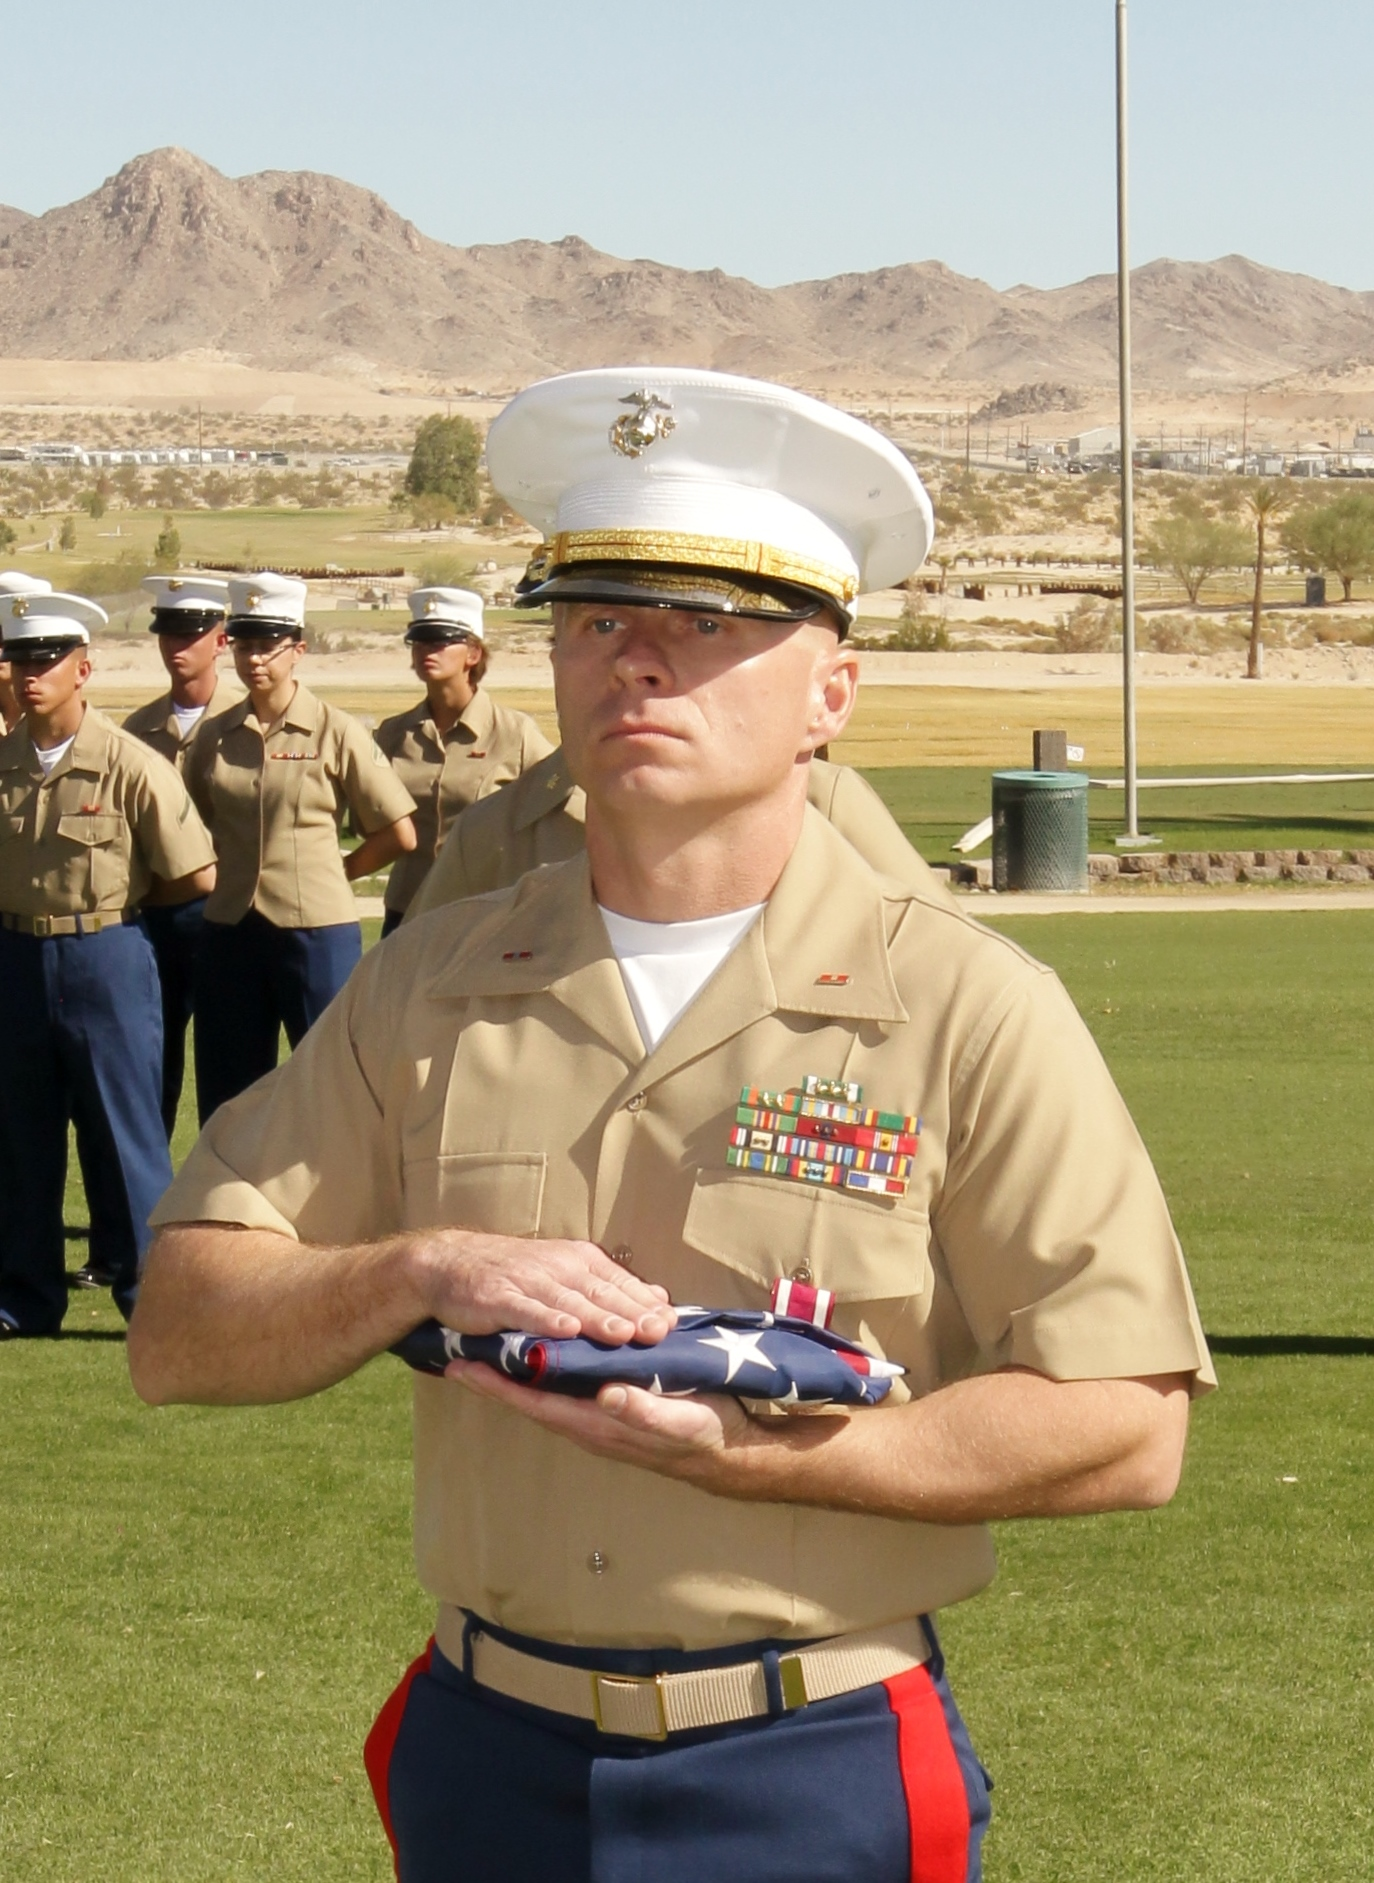 Jon stands in uniform with folded American flag.